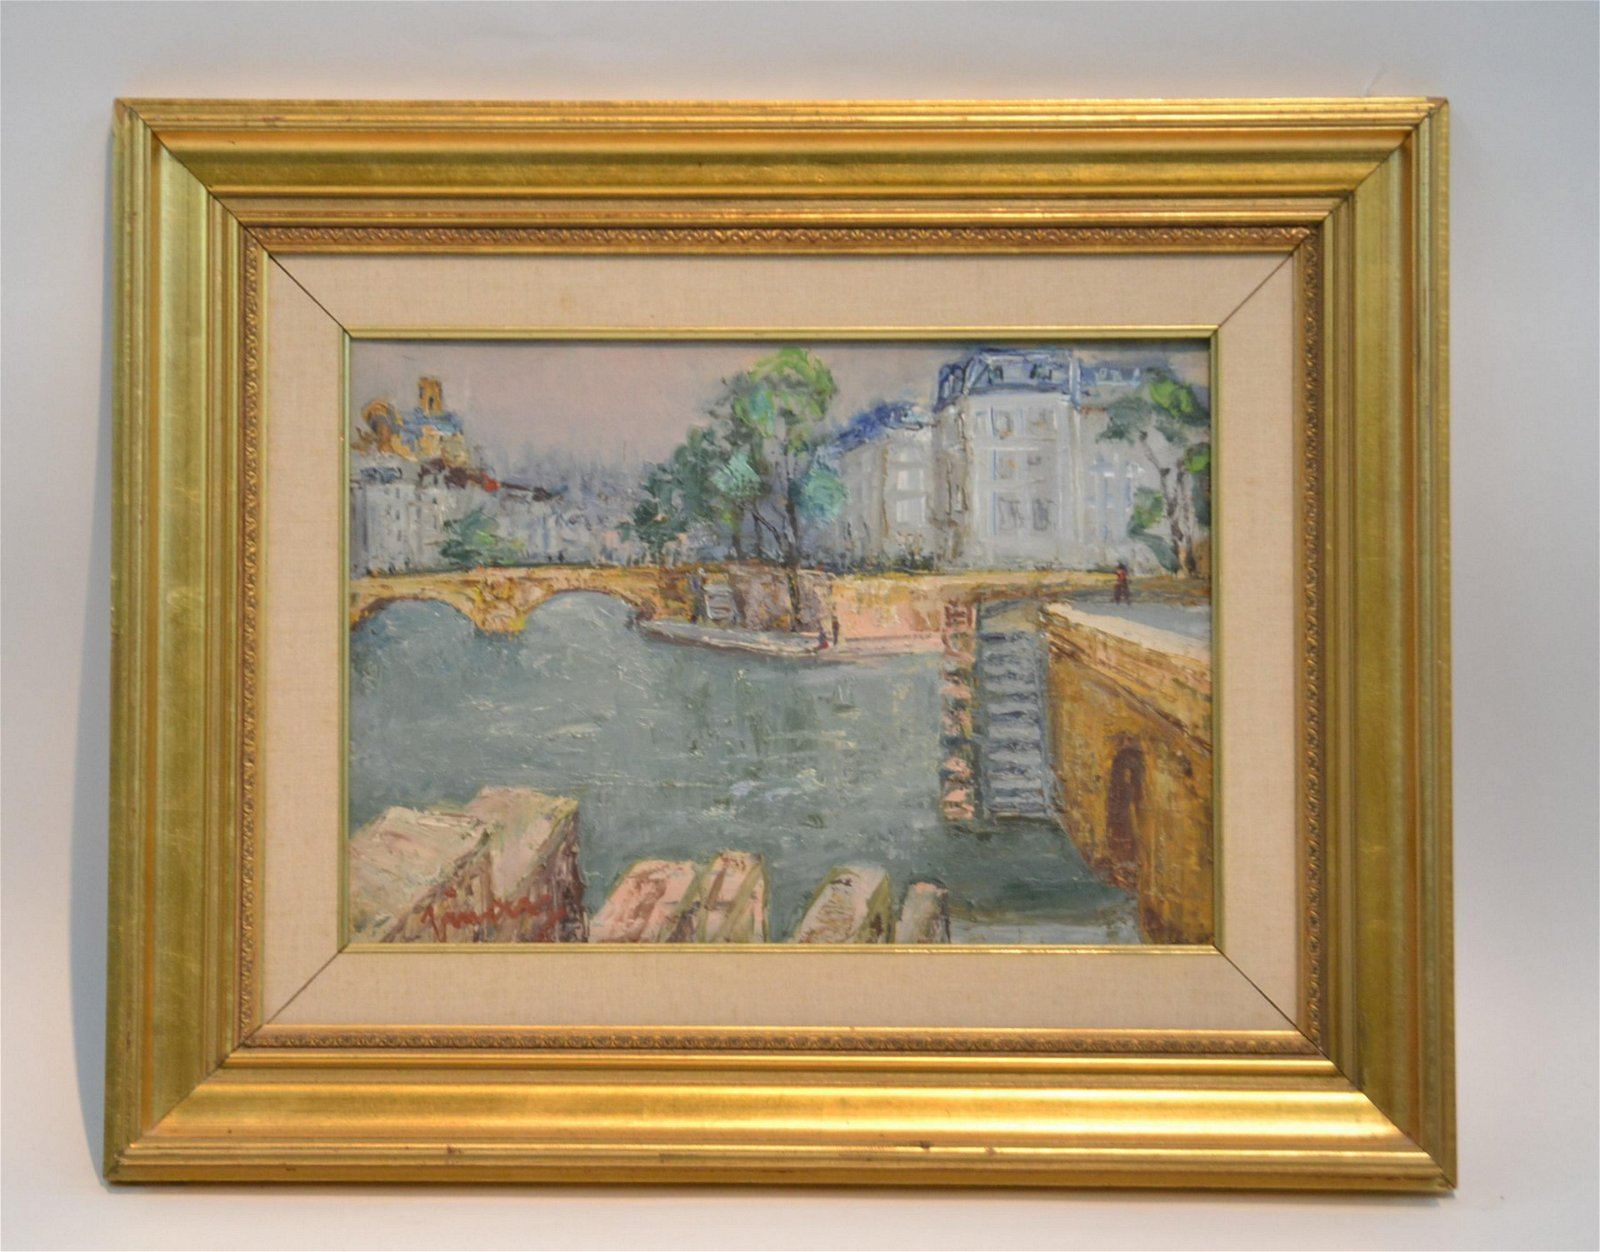 JEAN VINAY (french 1901-1978) OIL ON CANVAS